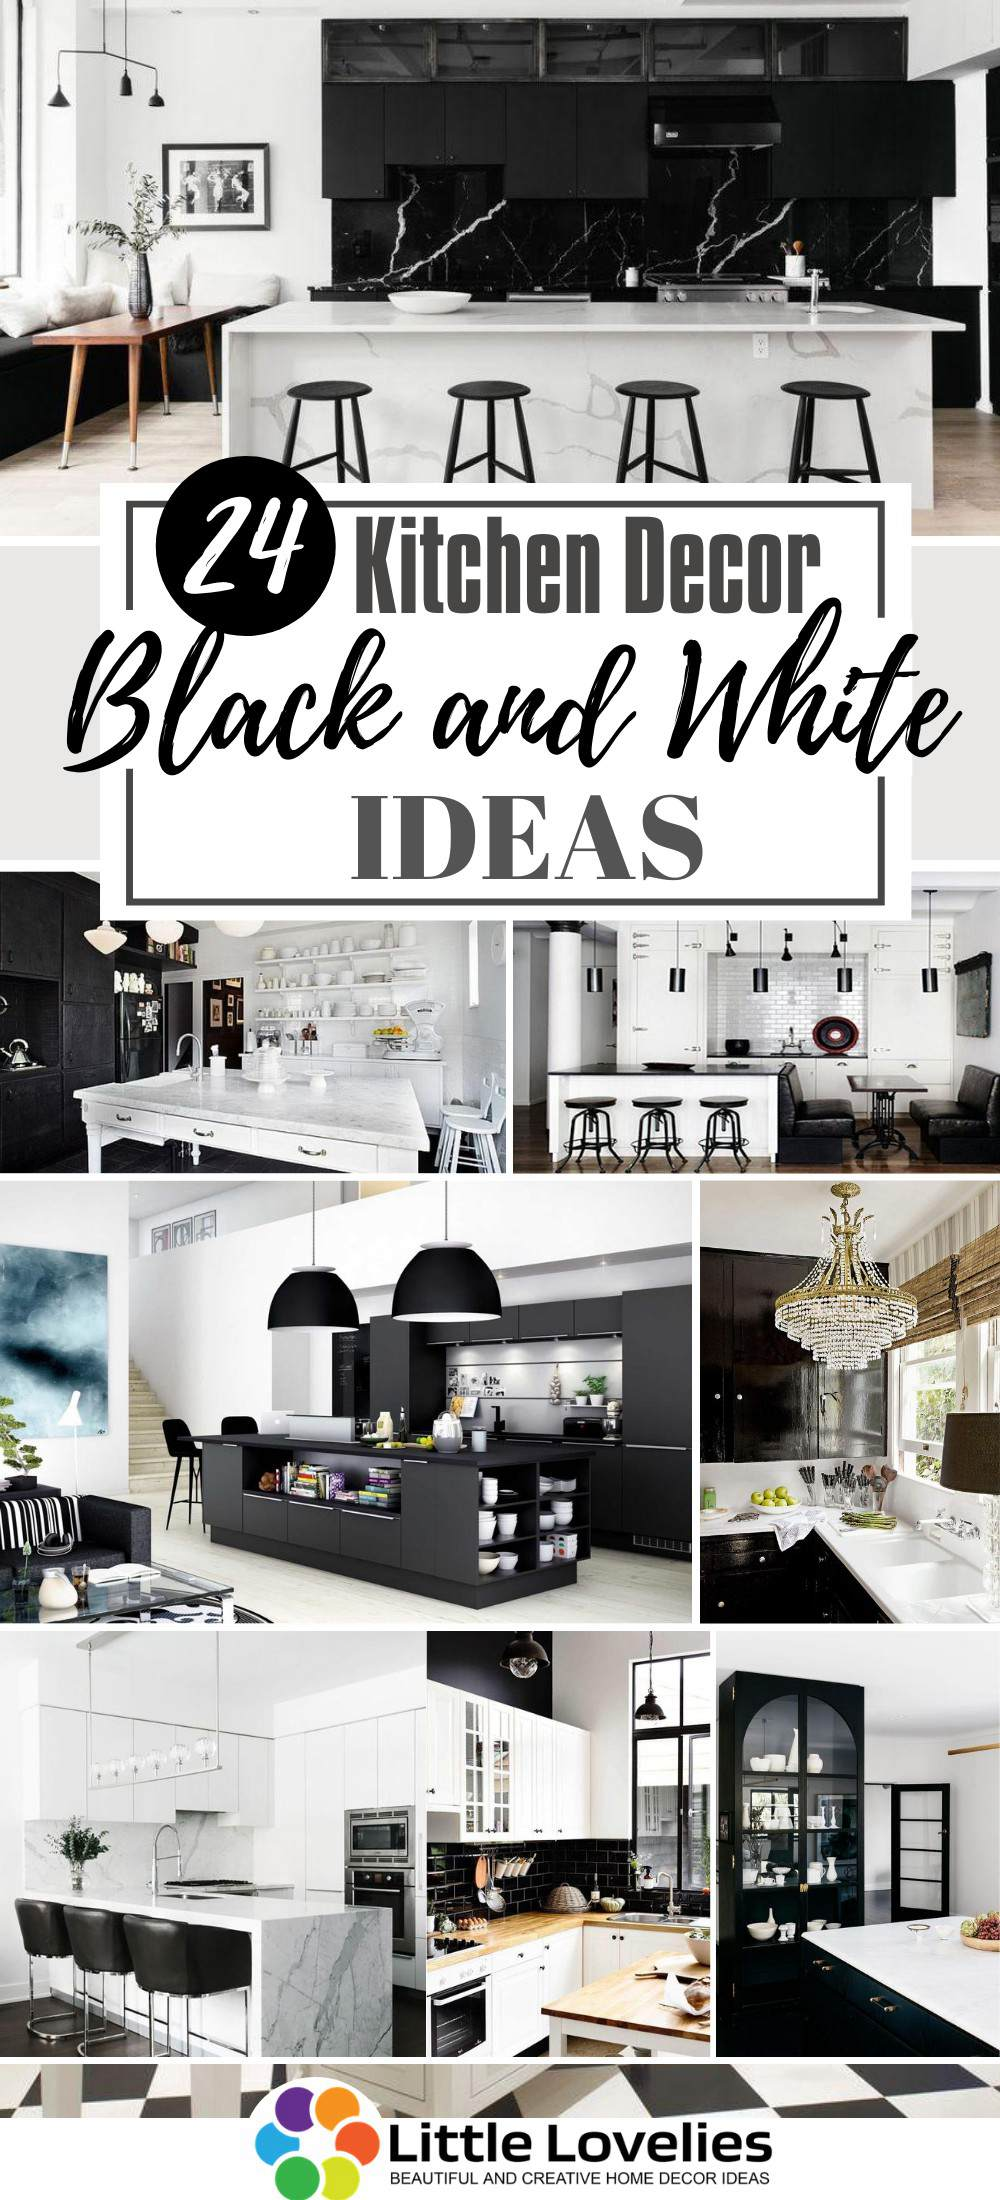 Best Black and White Kitchen Decor Ideas